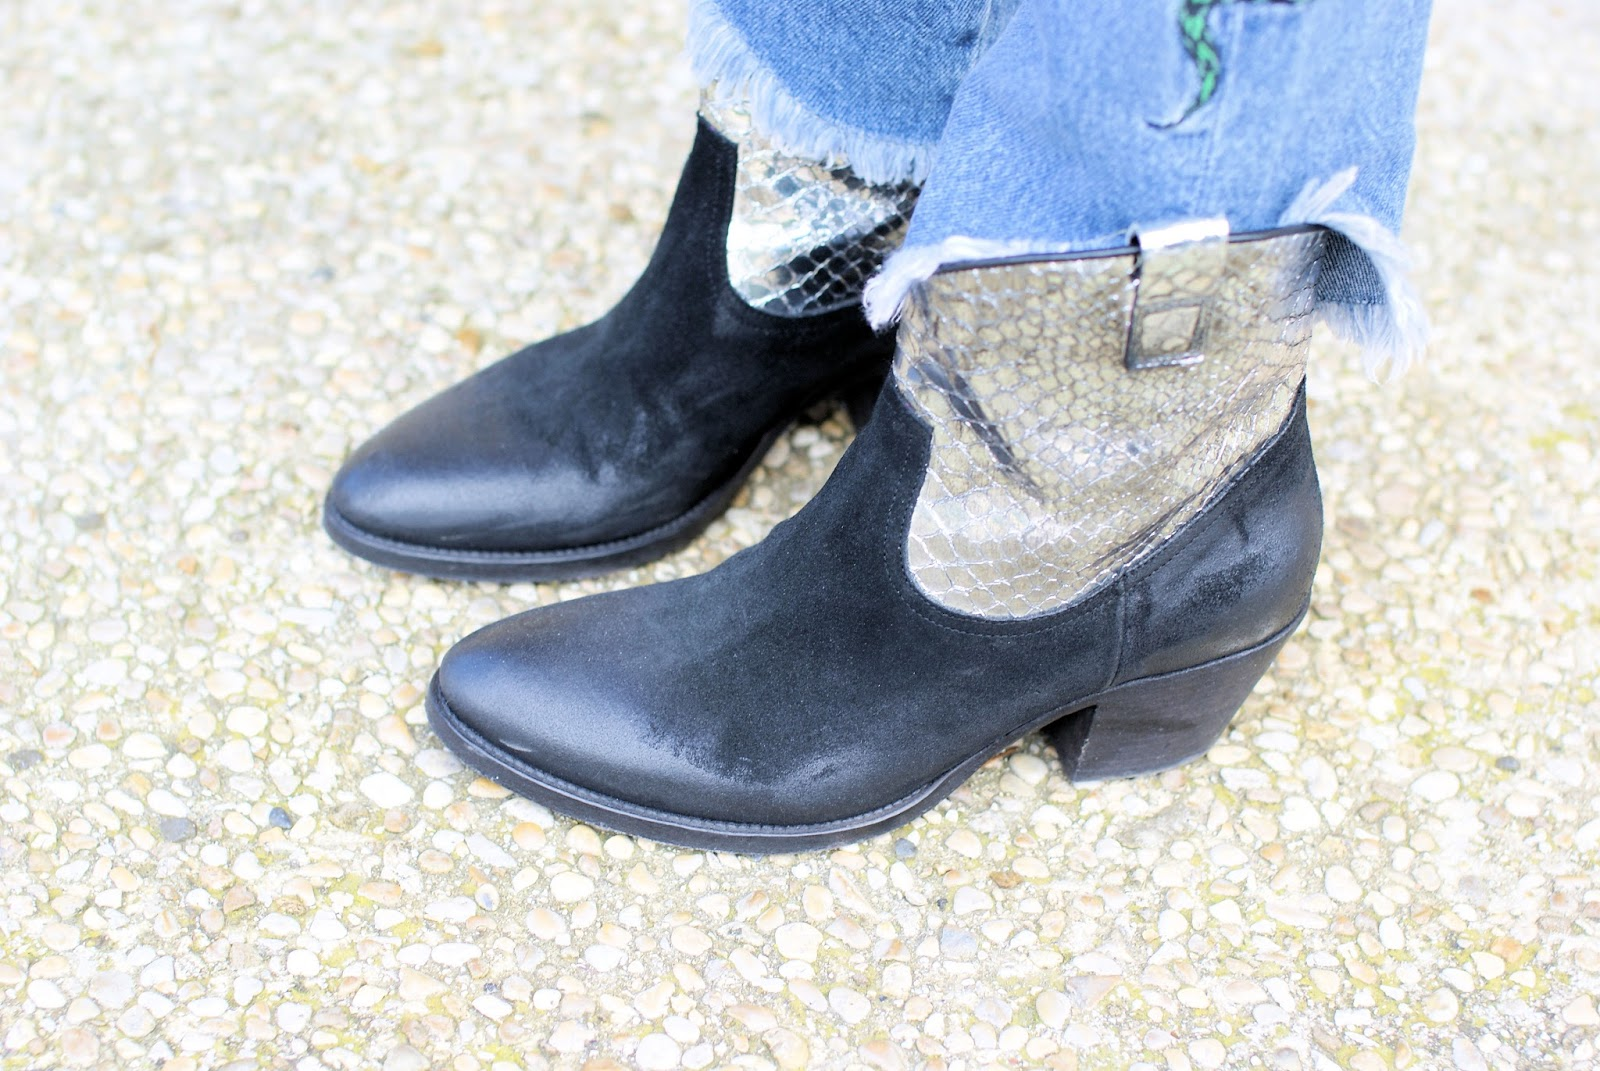 Western texan boots on Fashion and Cookies fashion blog, fashion blogger style